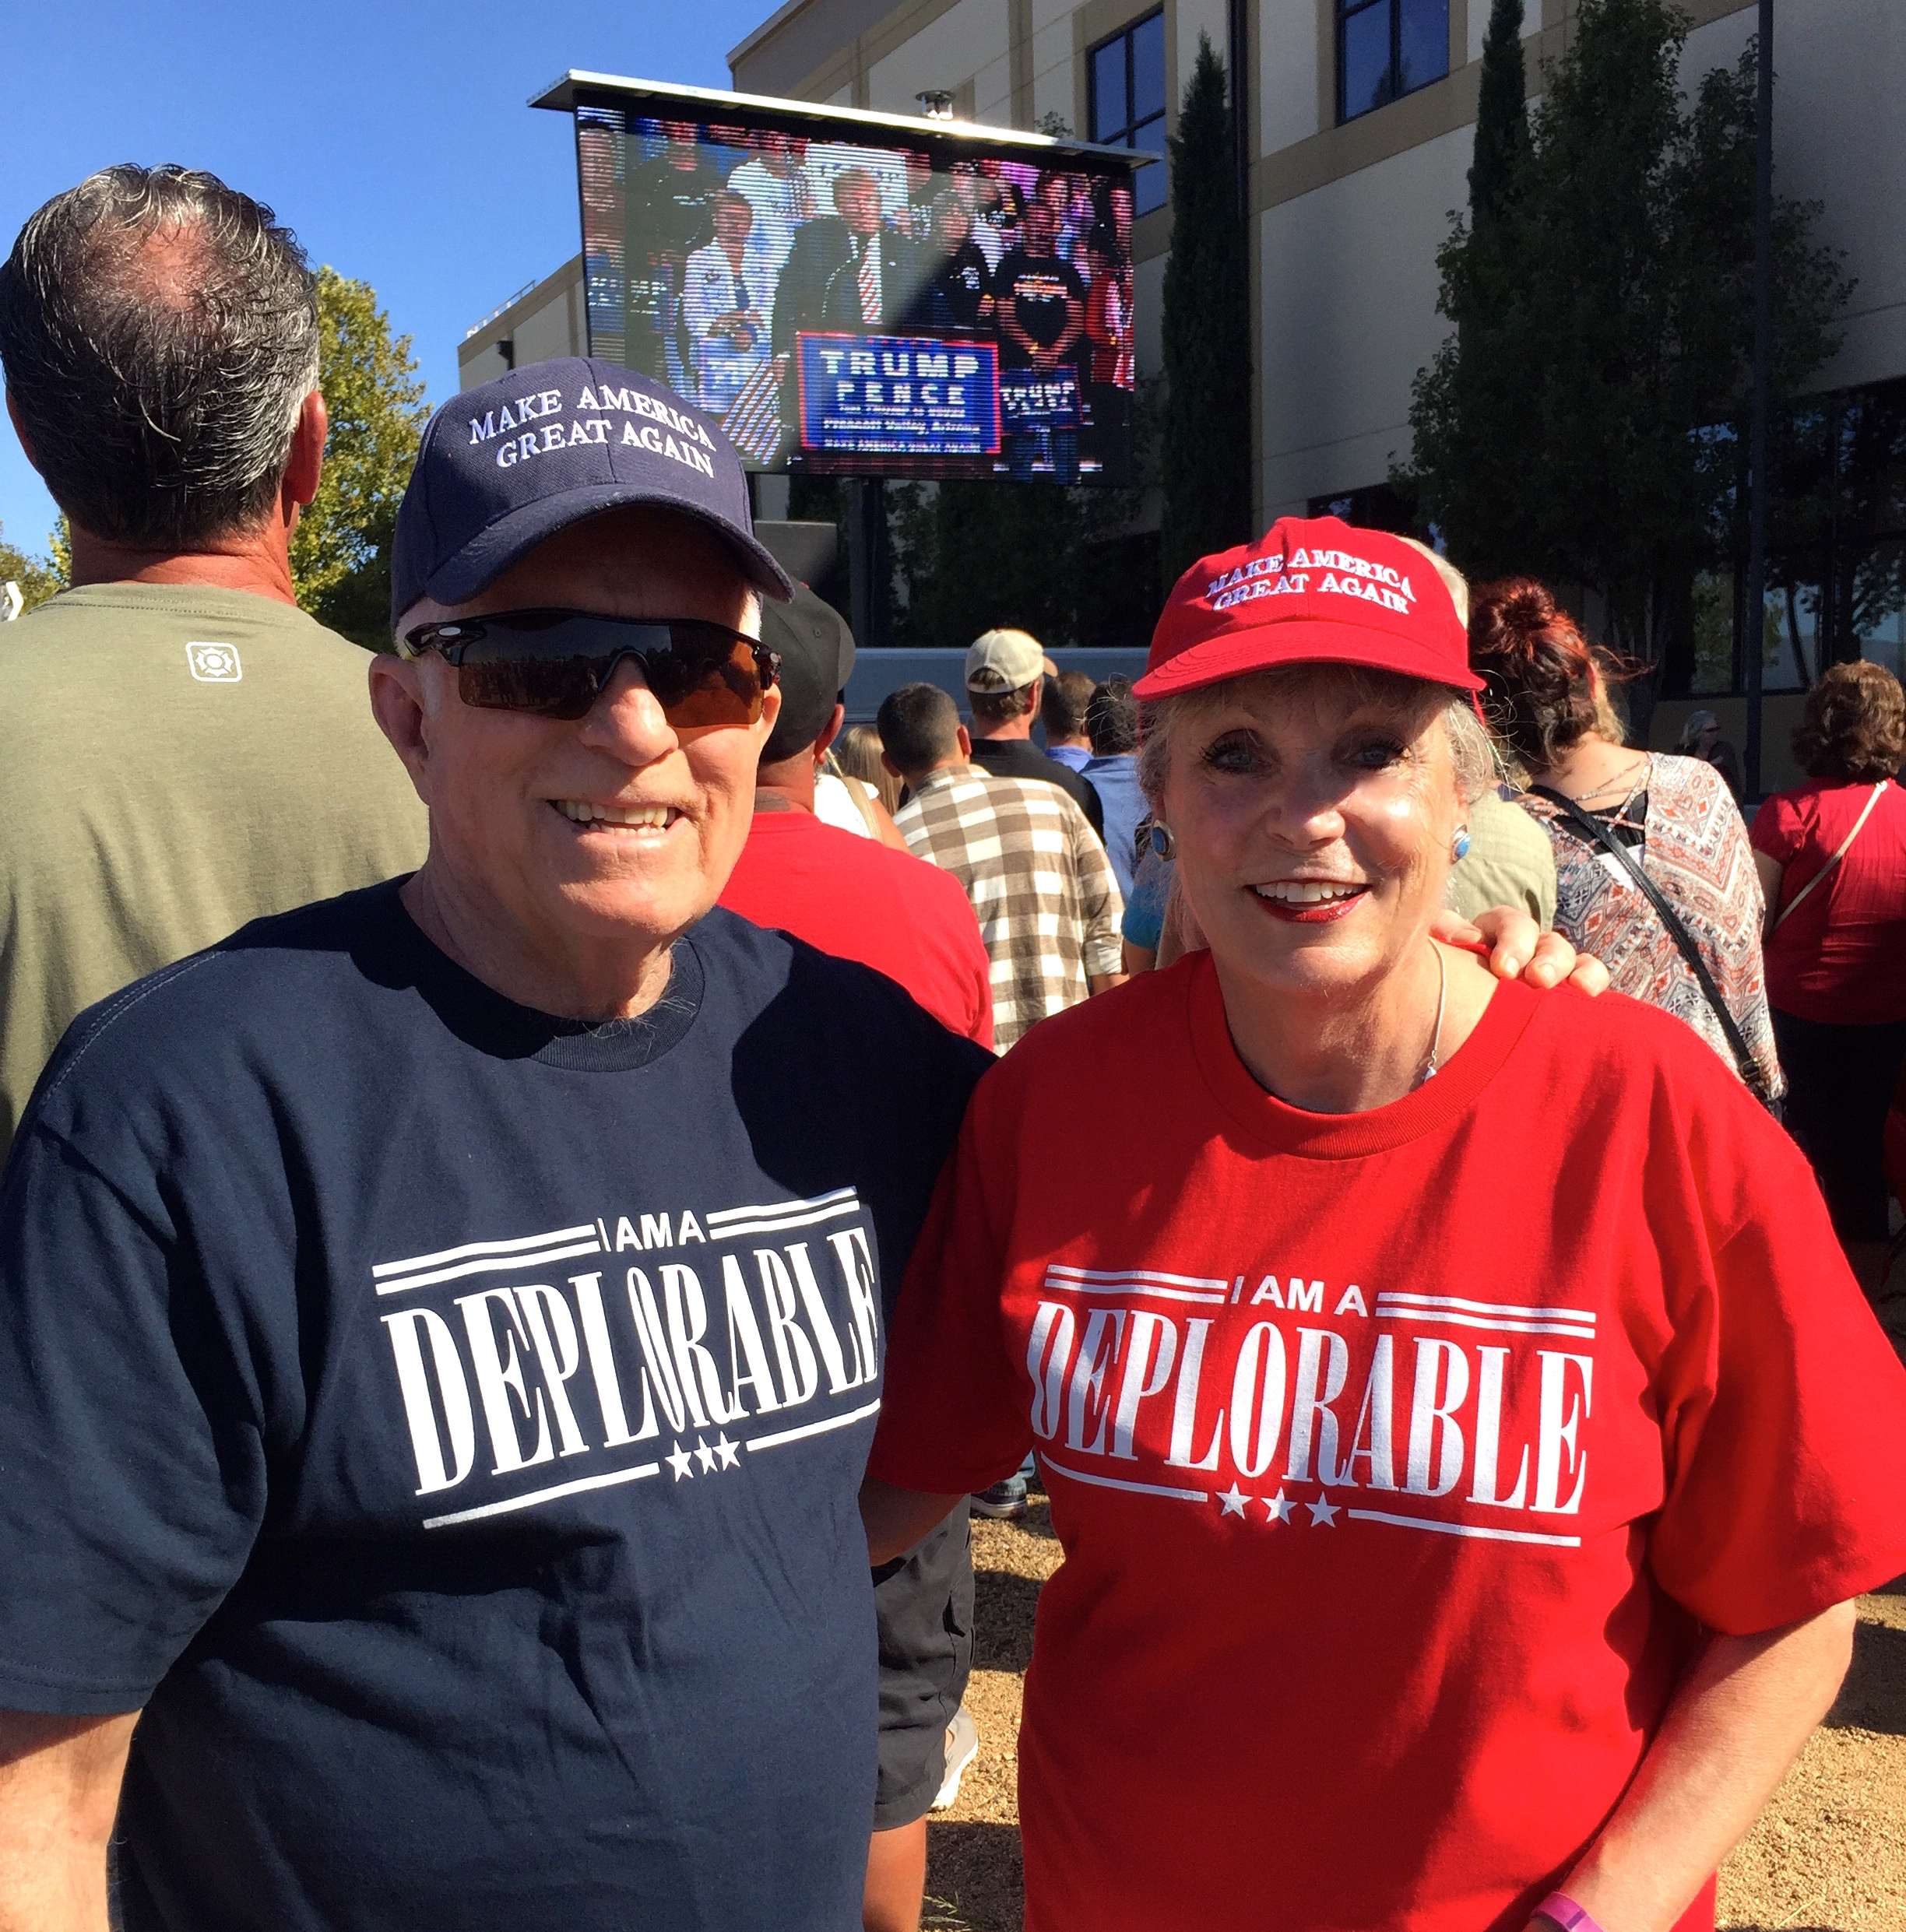 Deplorables_and_Proud!